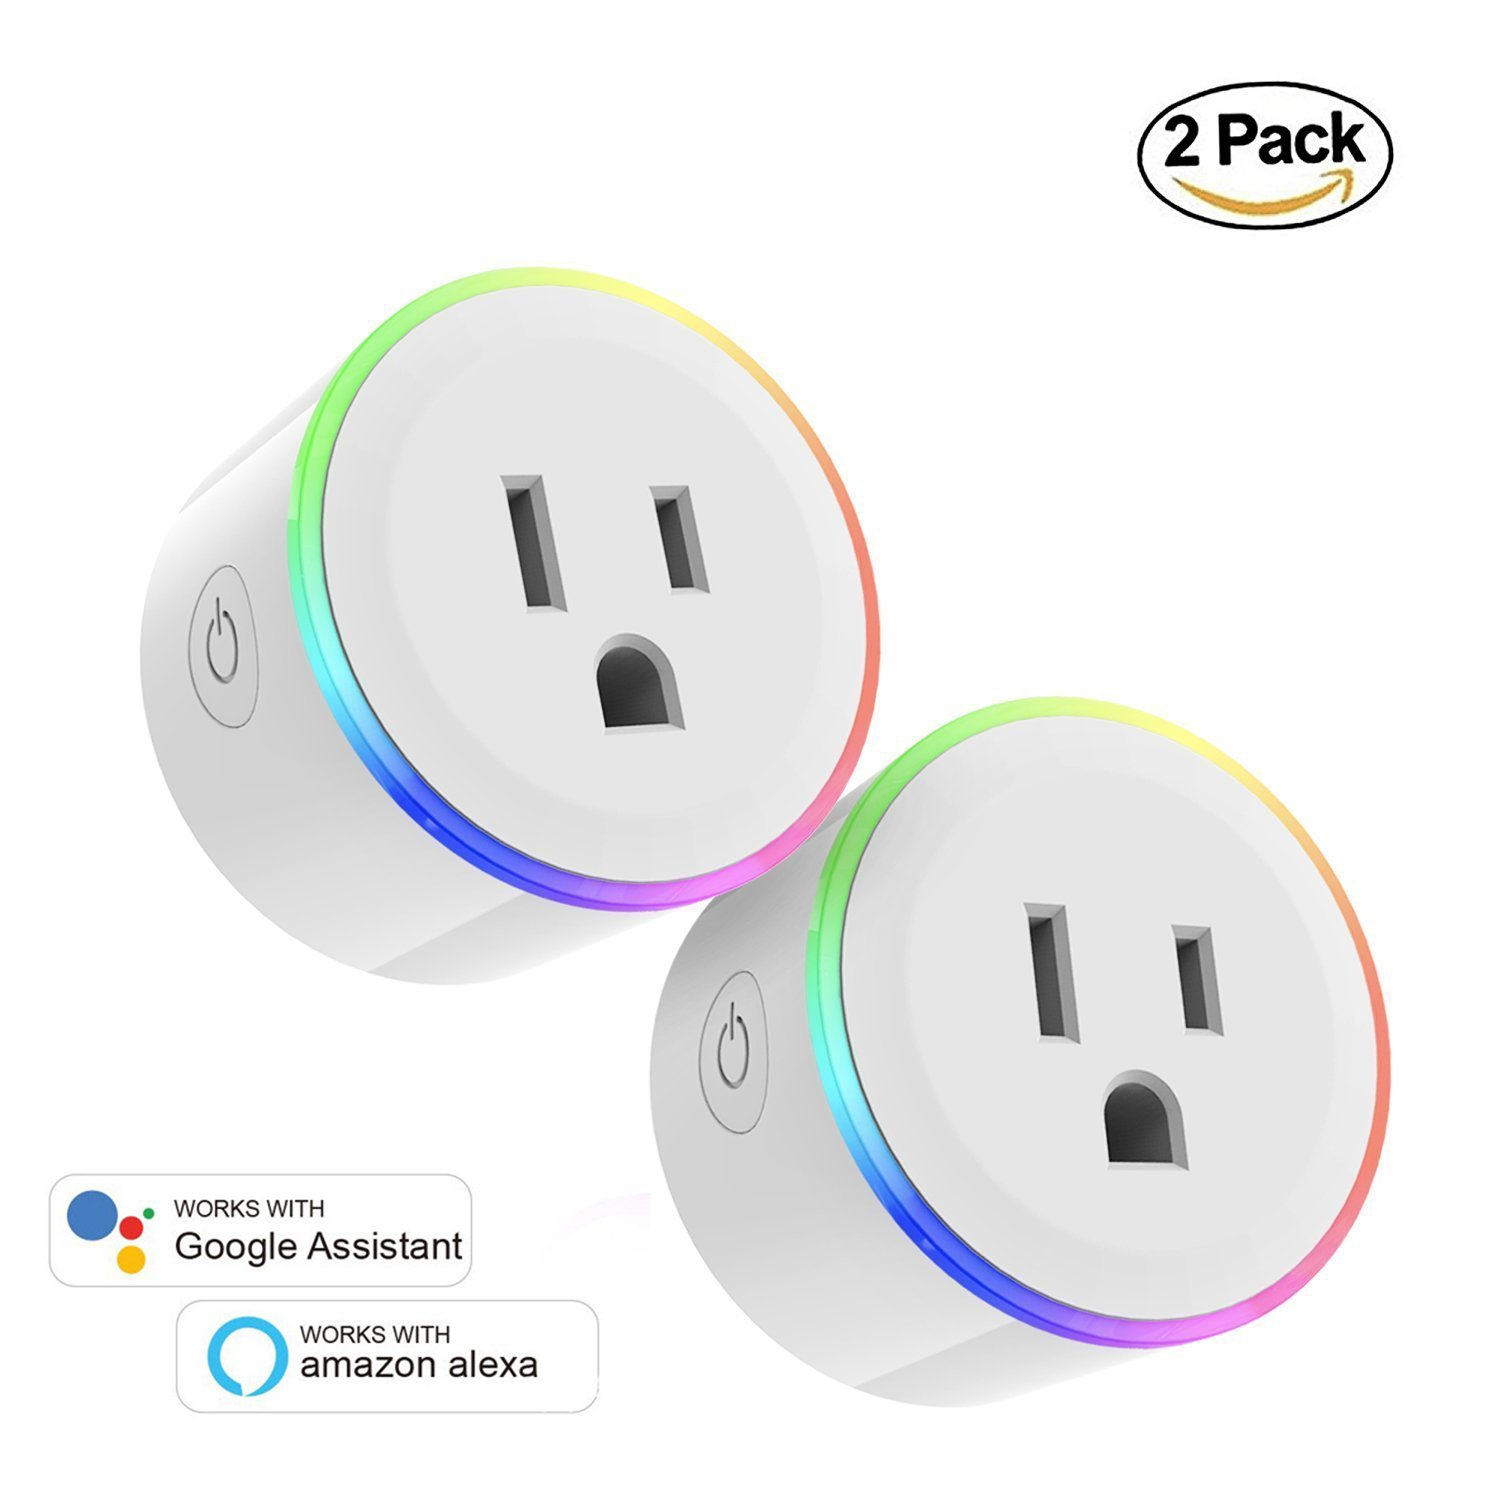 WiFi Smart Plug Wireless Mini Outlets Smart Socket with 7 Colors Night Light No Hub Required Control Timing Function Control Your Electric Devices from Anywhere Works with Alexa and Google Assistant 2